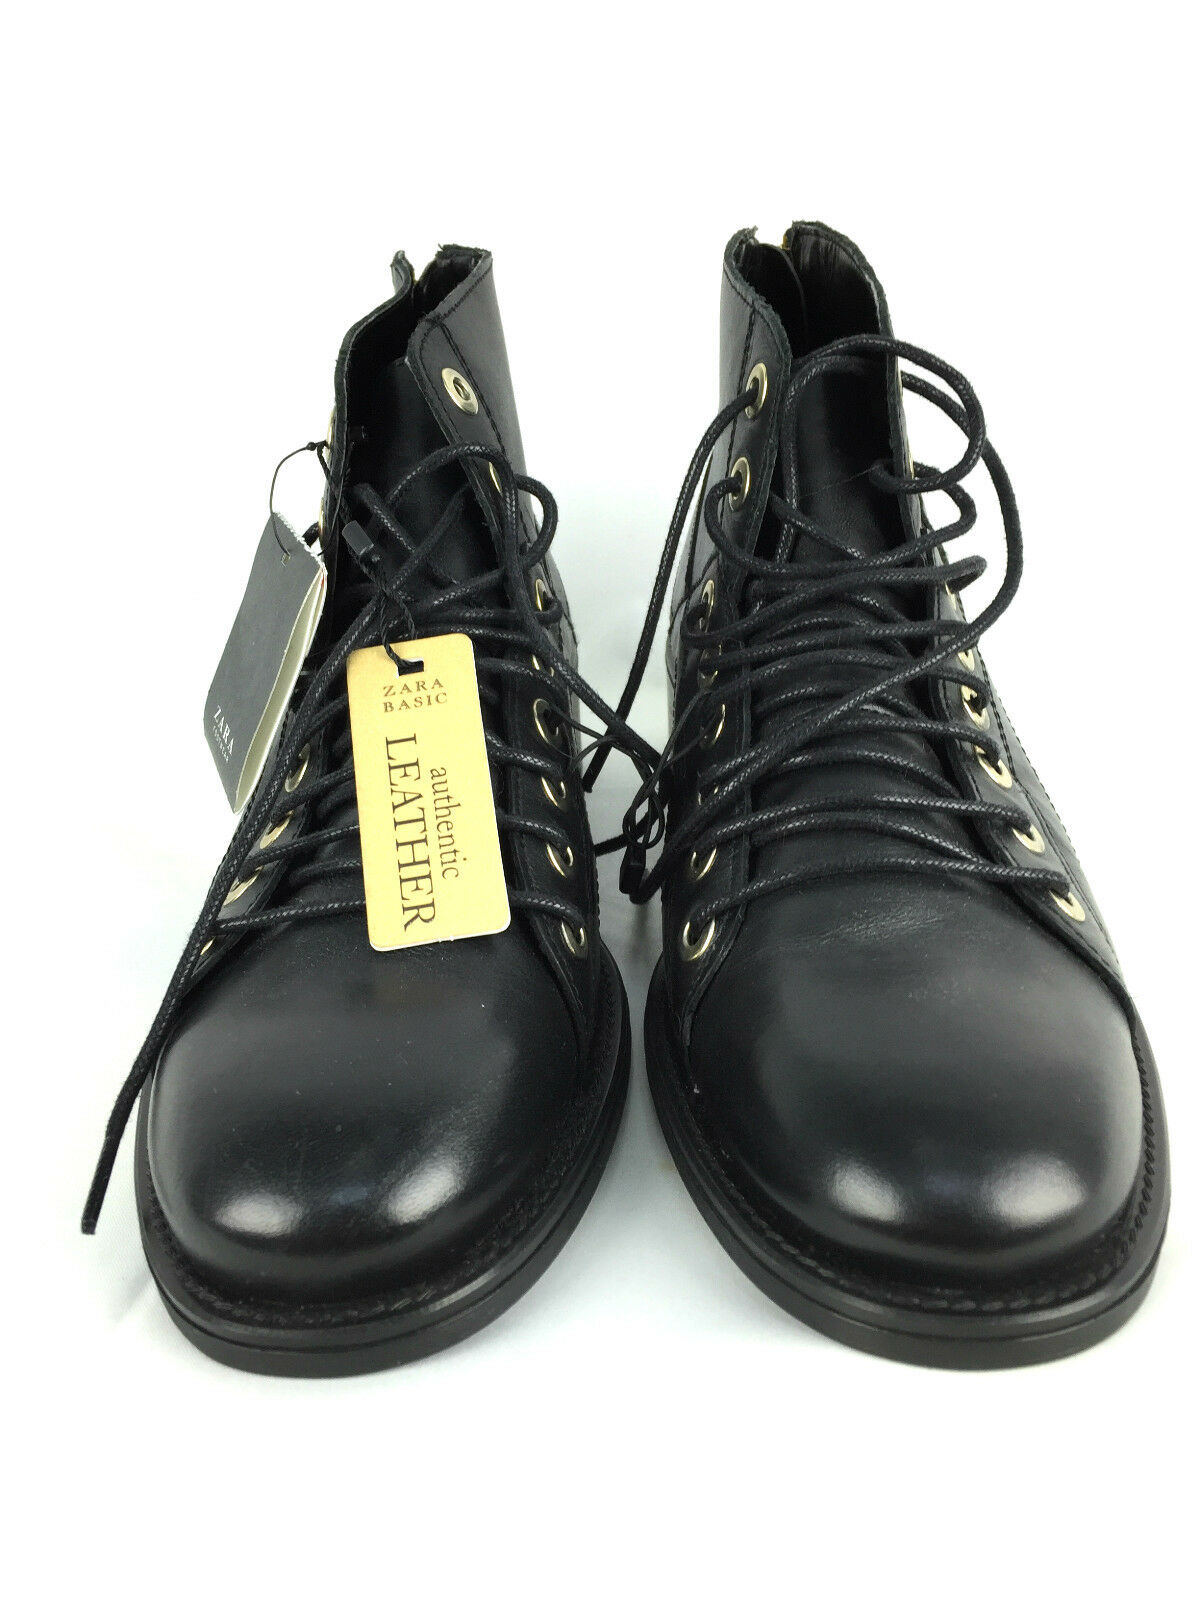 ZARA EUR BLACK LEATHER LACE-UP ANKLE Stiefel Schuhe EUR ZARA 37 39 40 447c6a